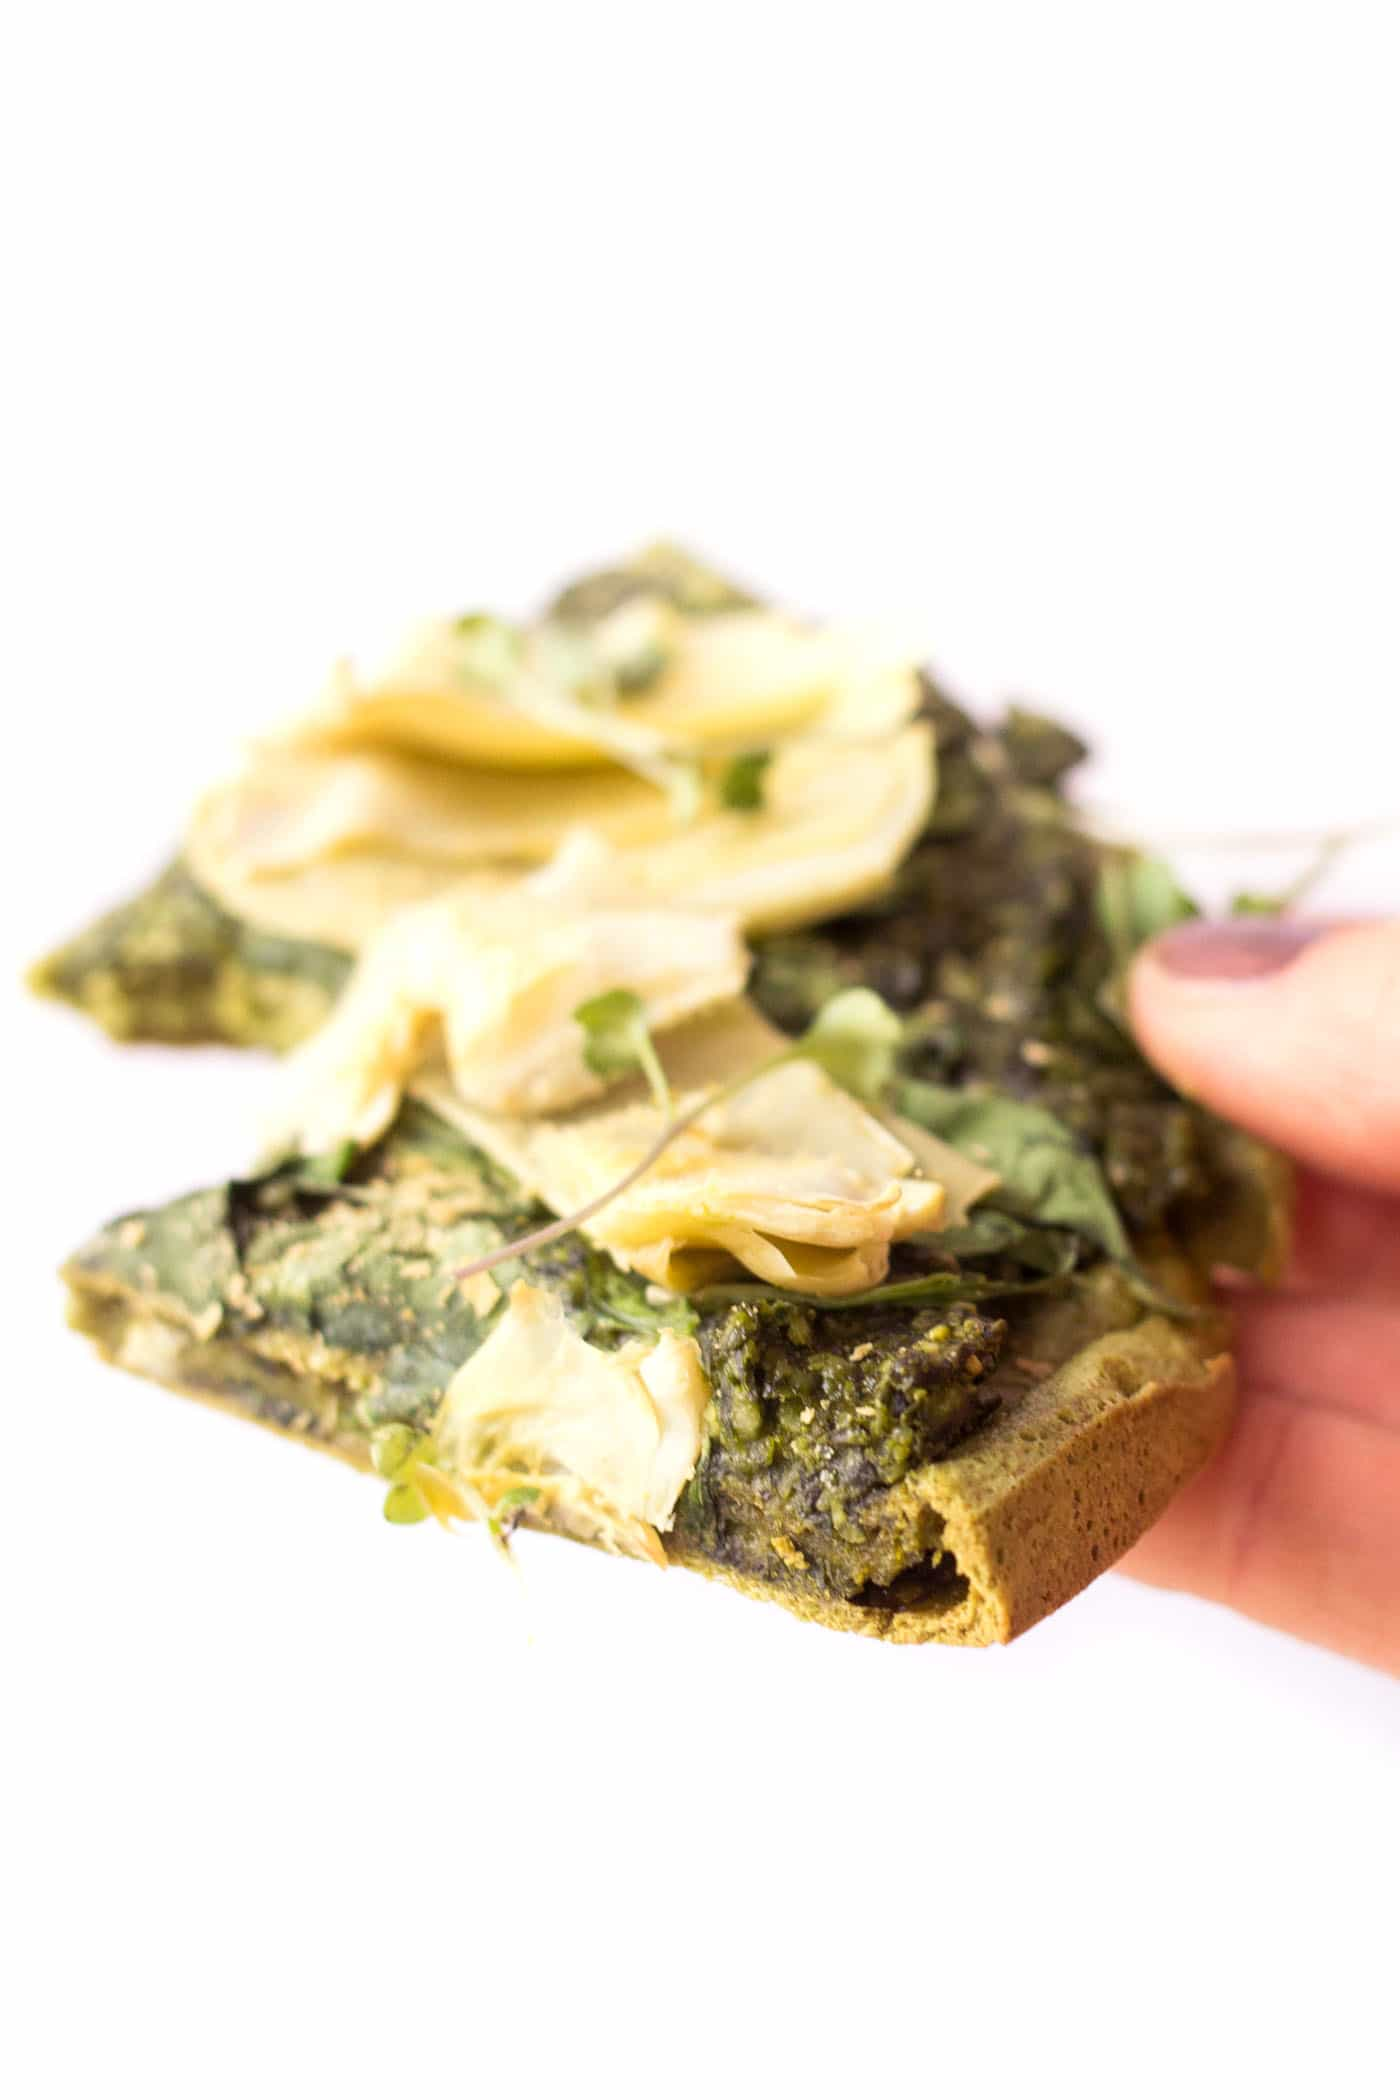 This is the PERFECT slice of pizza --> quinoa pizza crust topped with vegan pesto, spinach + artichokes. Oh my heaven!